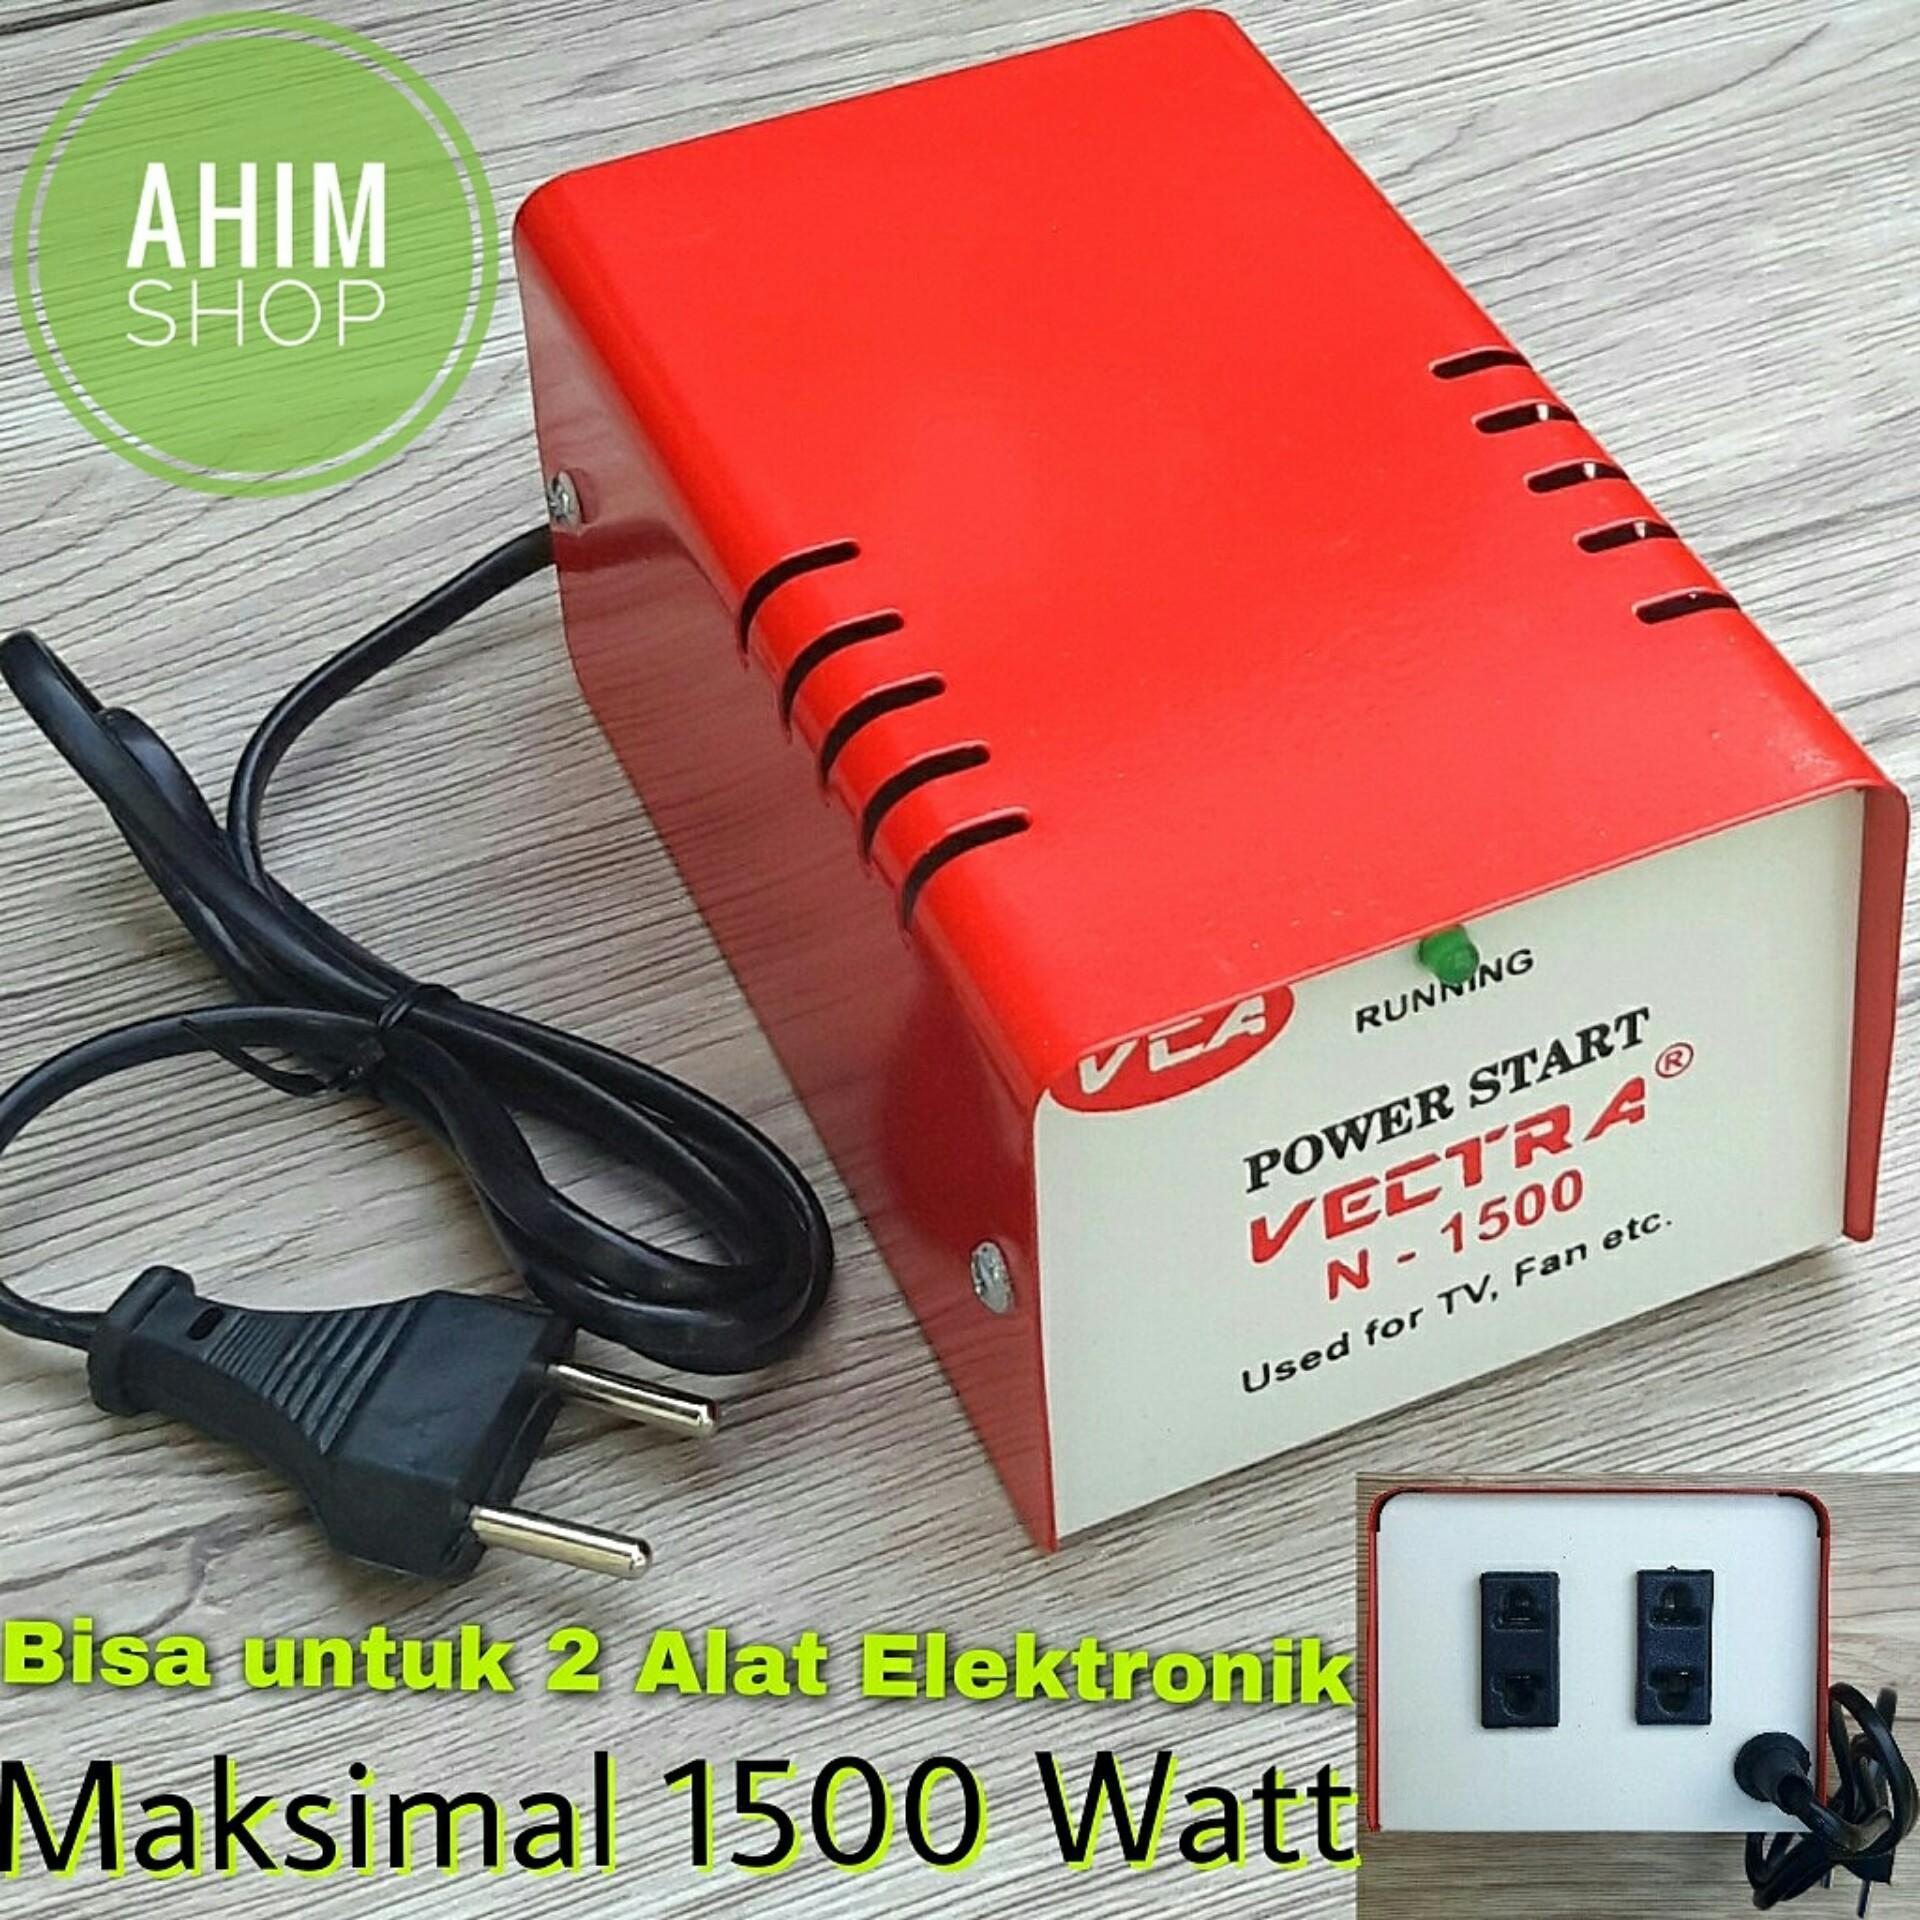 VECTRA Auto Start Dua Alat Elektronik Max 1500 W Body Besi Automatic Power Starting Penghemat Listrik